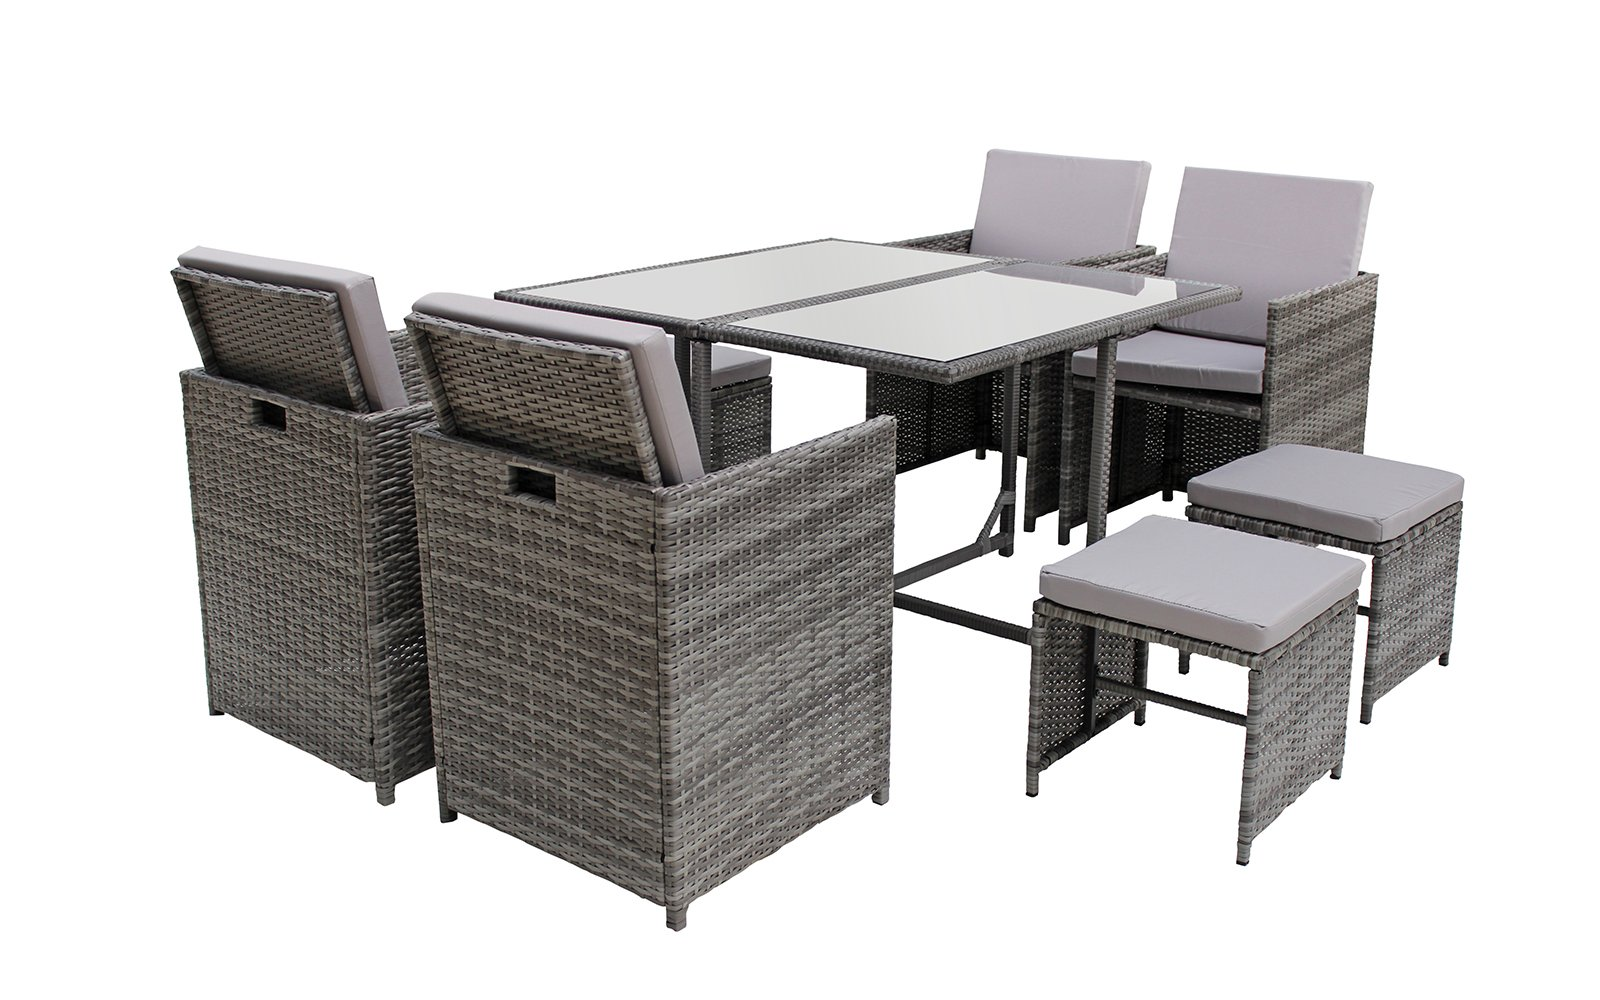 Modern 8 Piece Space Saving Outdoor Furniture Dining Set, Patio Rattan Table and Chairs Set (Grey/Grey) by Sofamania (Image #3)